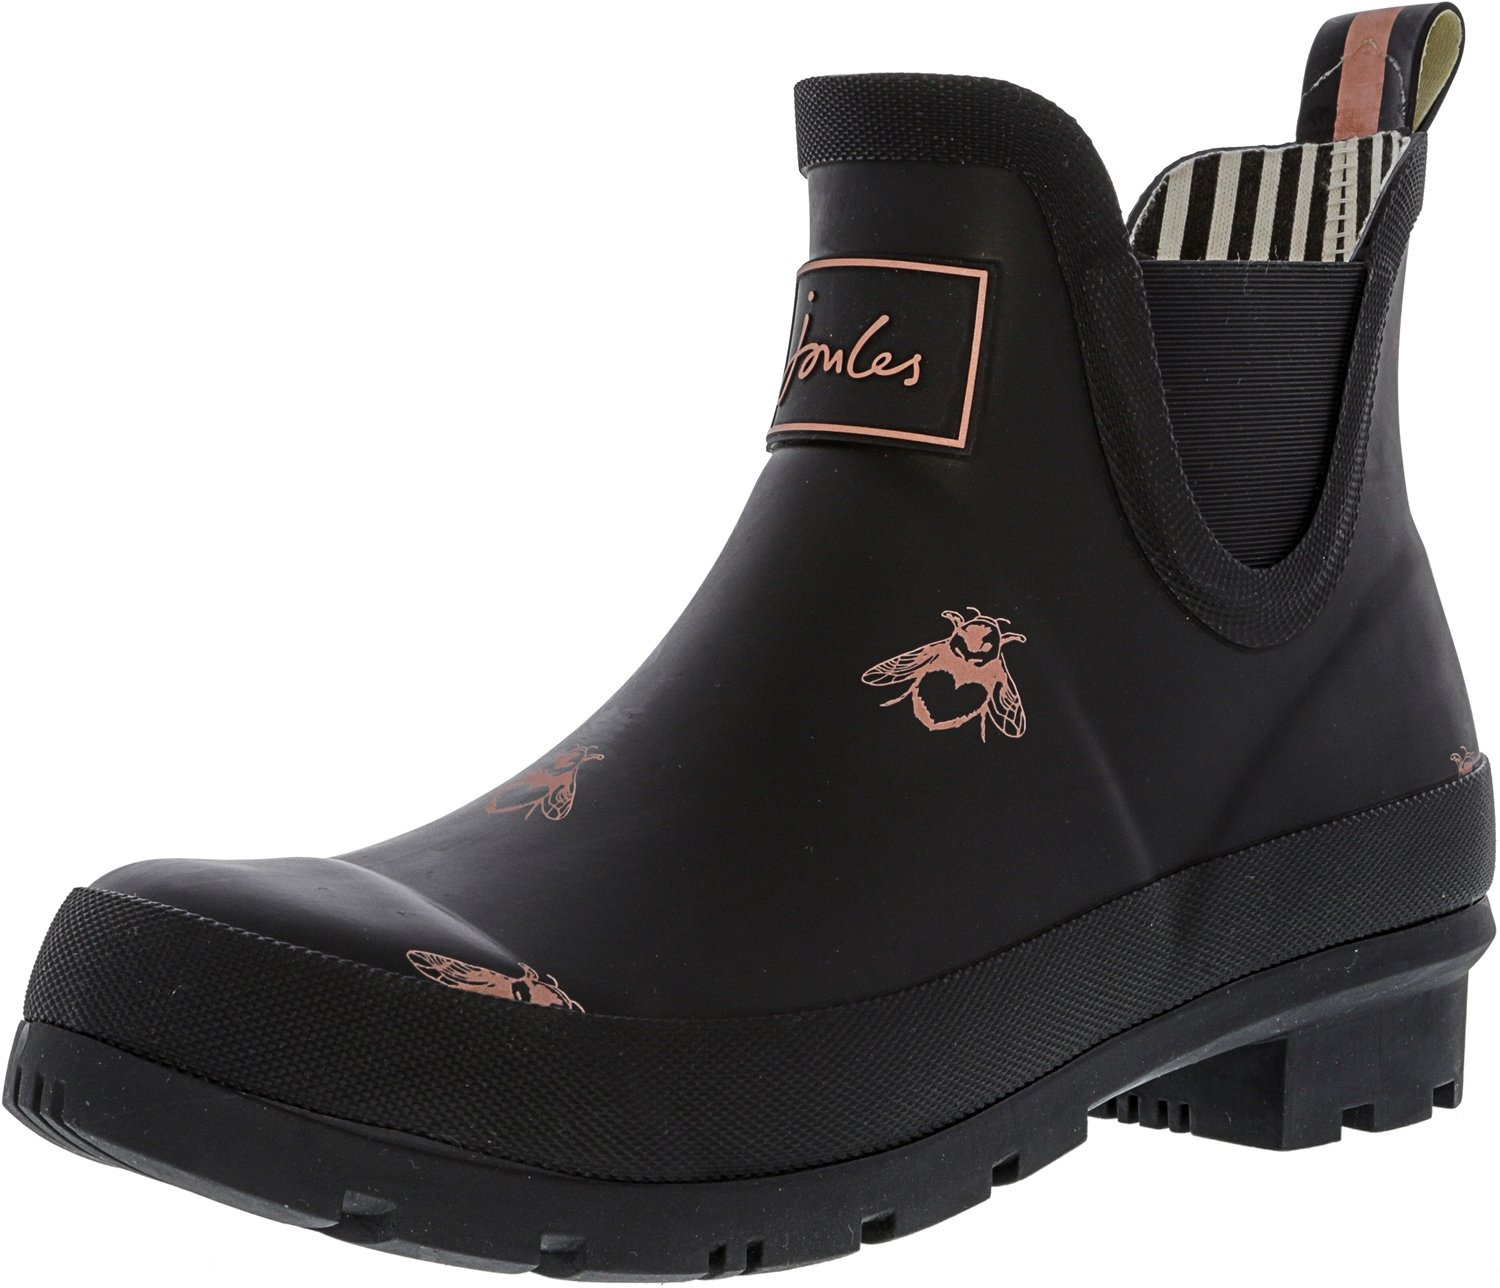 Joules Women's Wellibob Black Love Bees Ankle-High Rubber Rain Boot - 6M